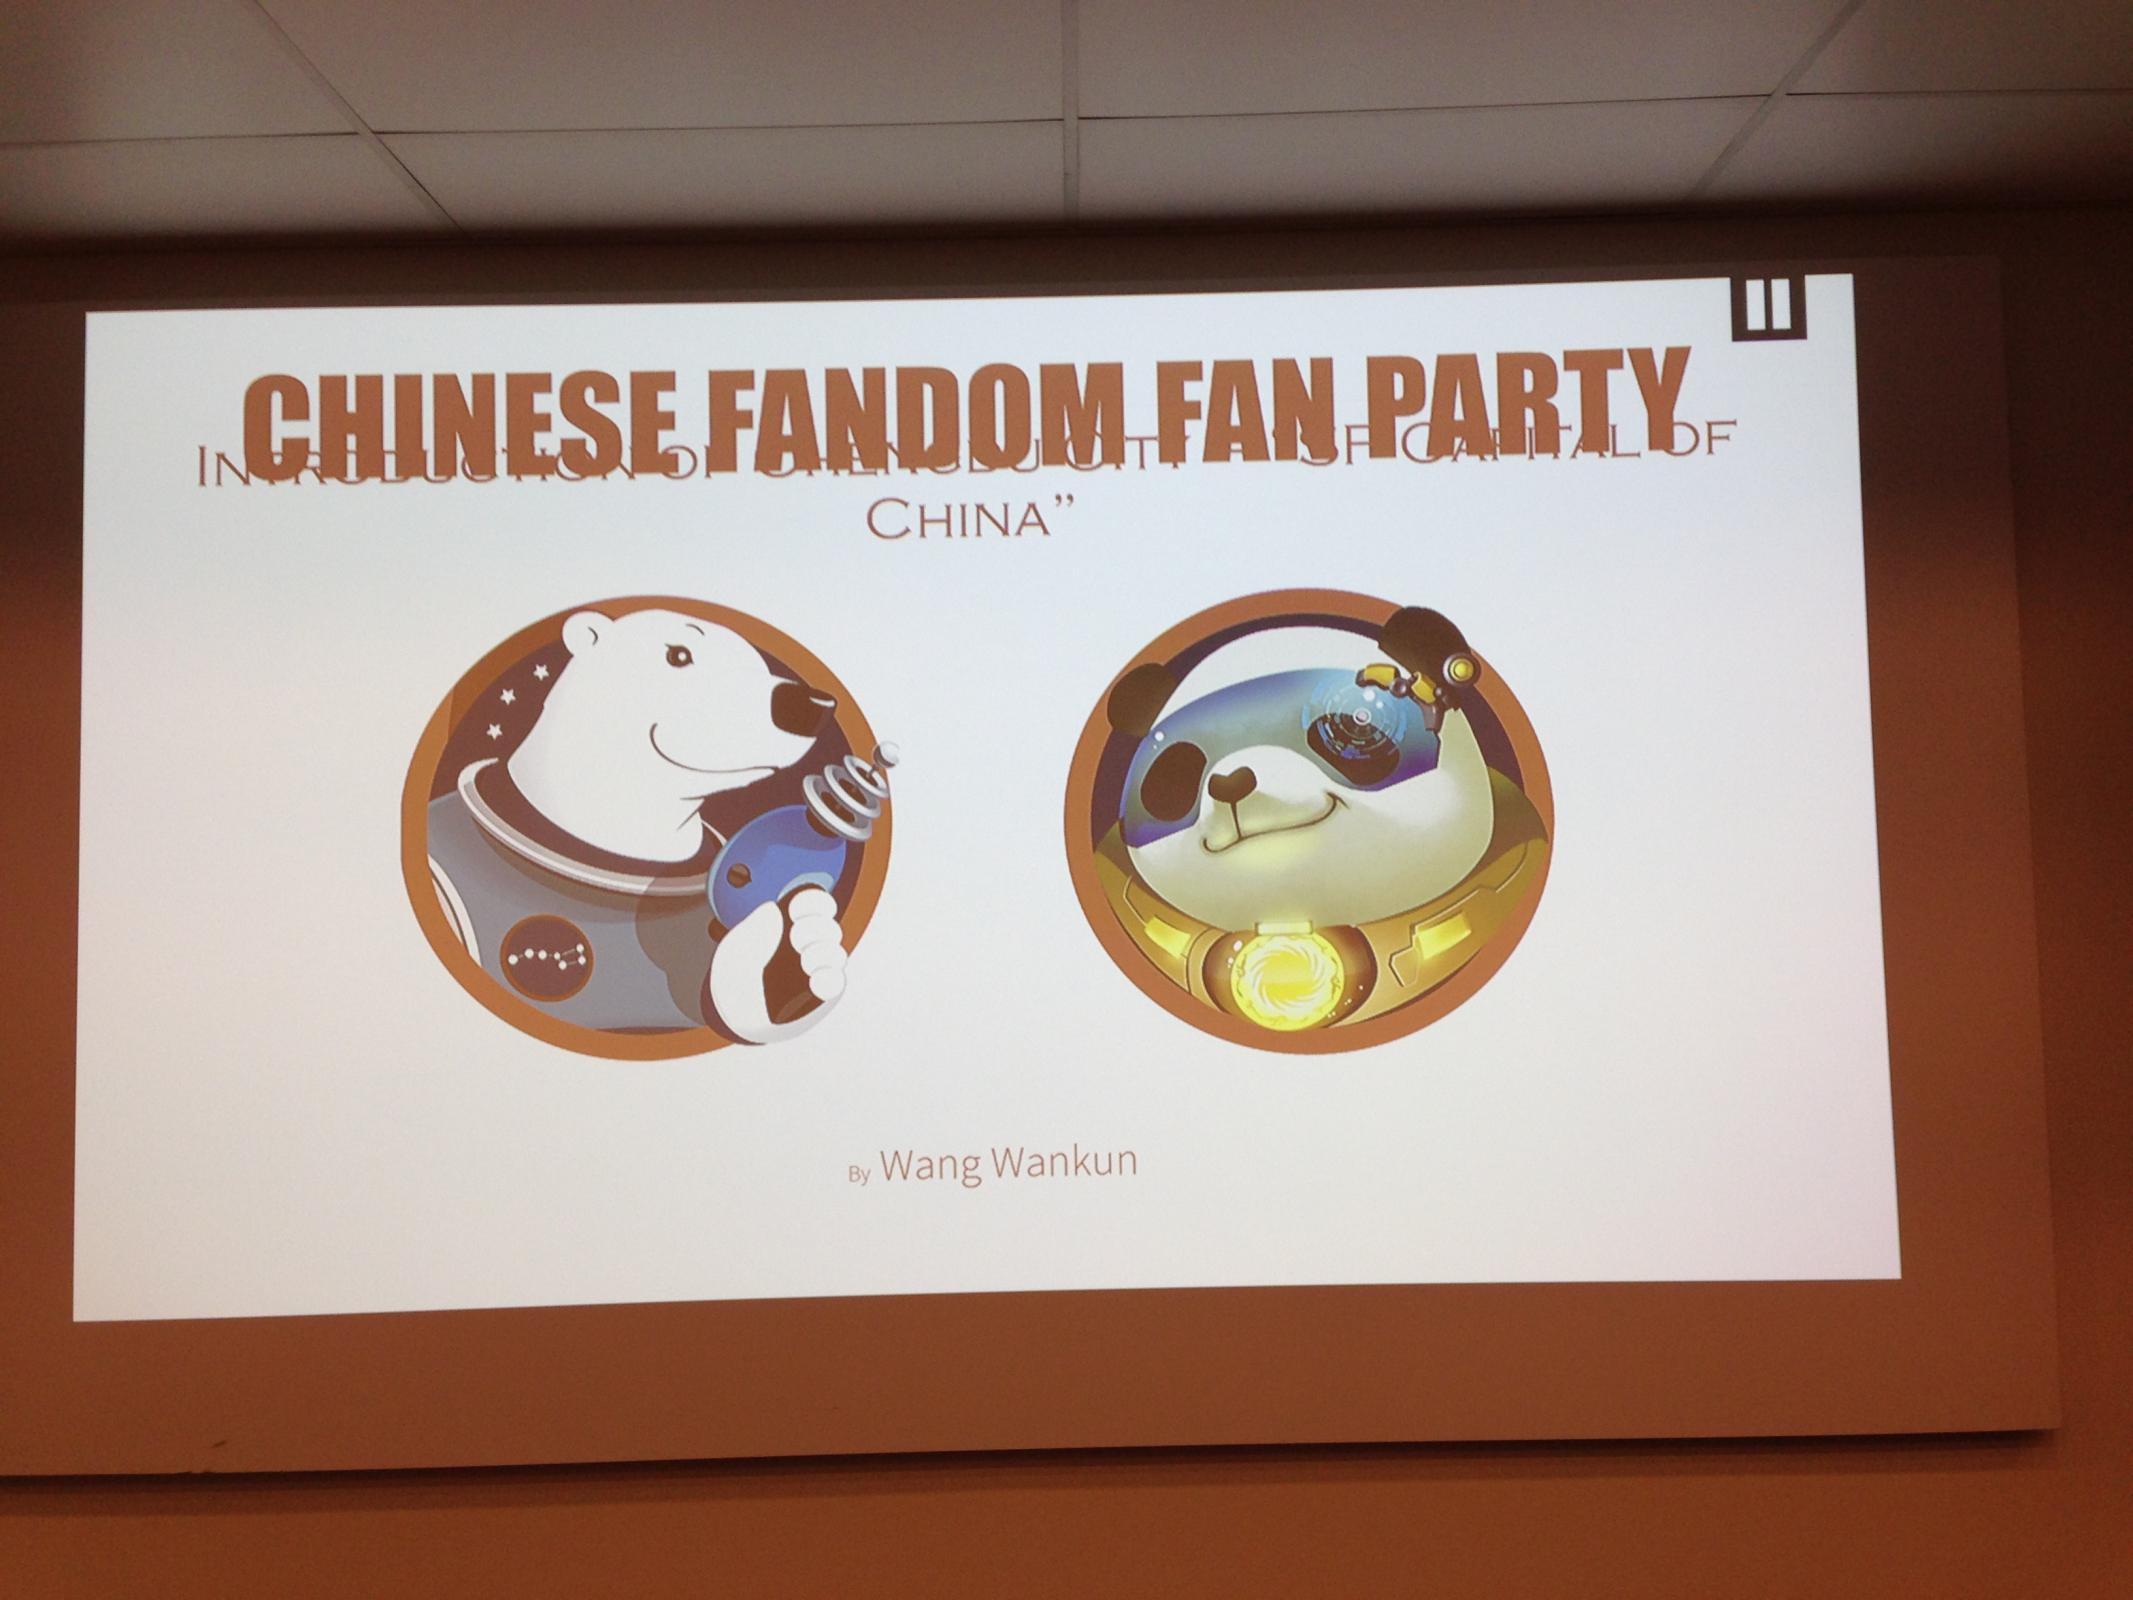 WorldCon 75 Helsinki - Chinese Fandom Party